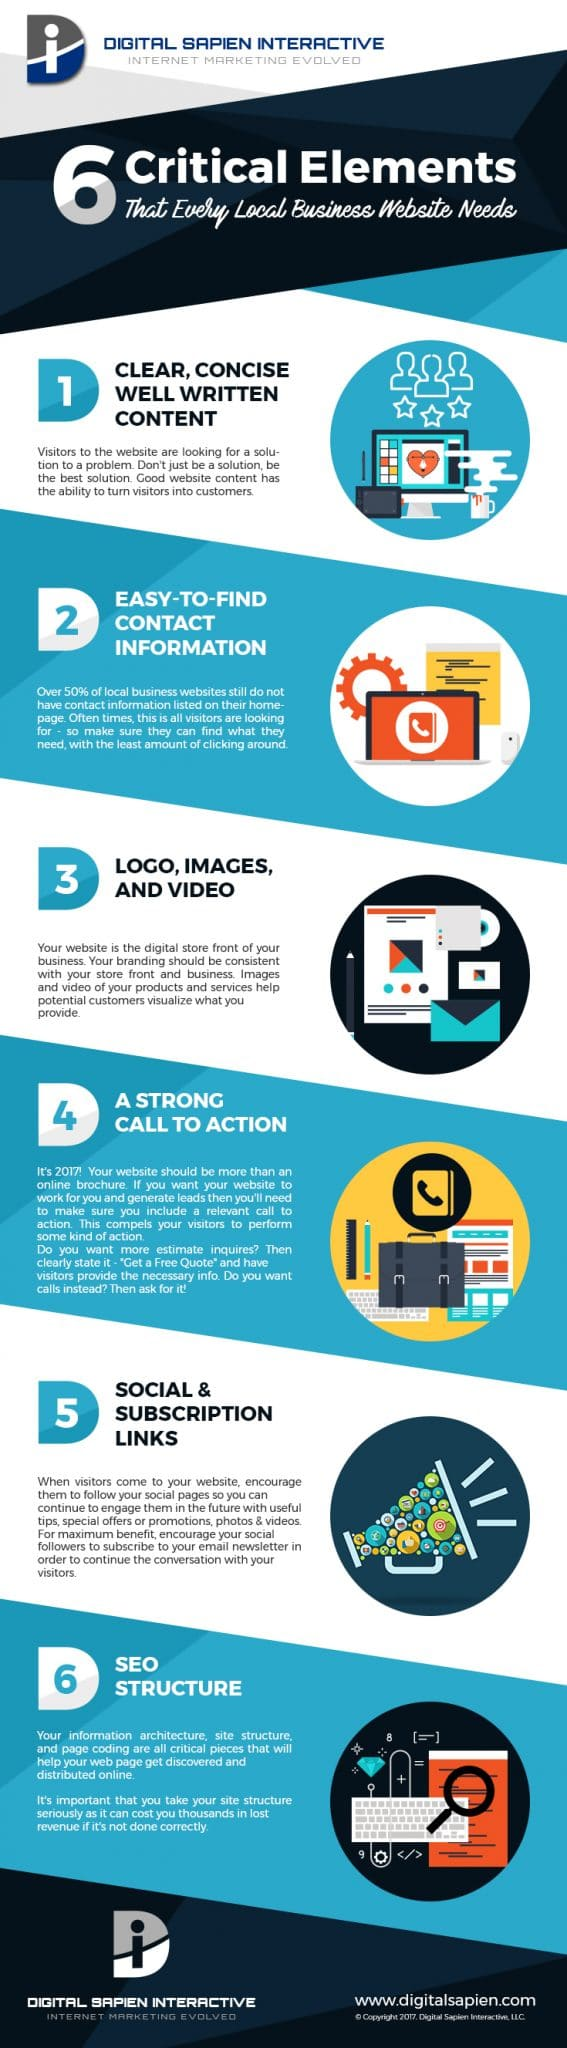 local business web design infographic